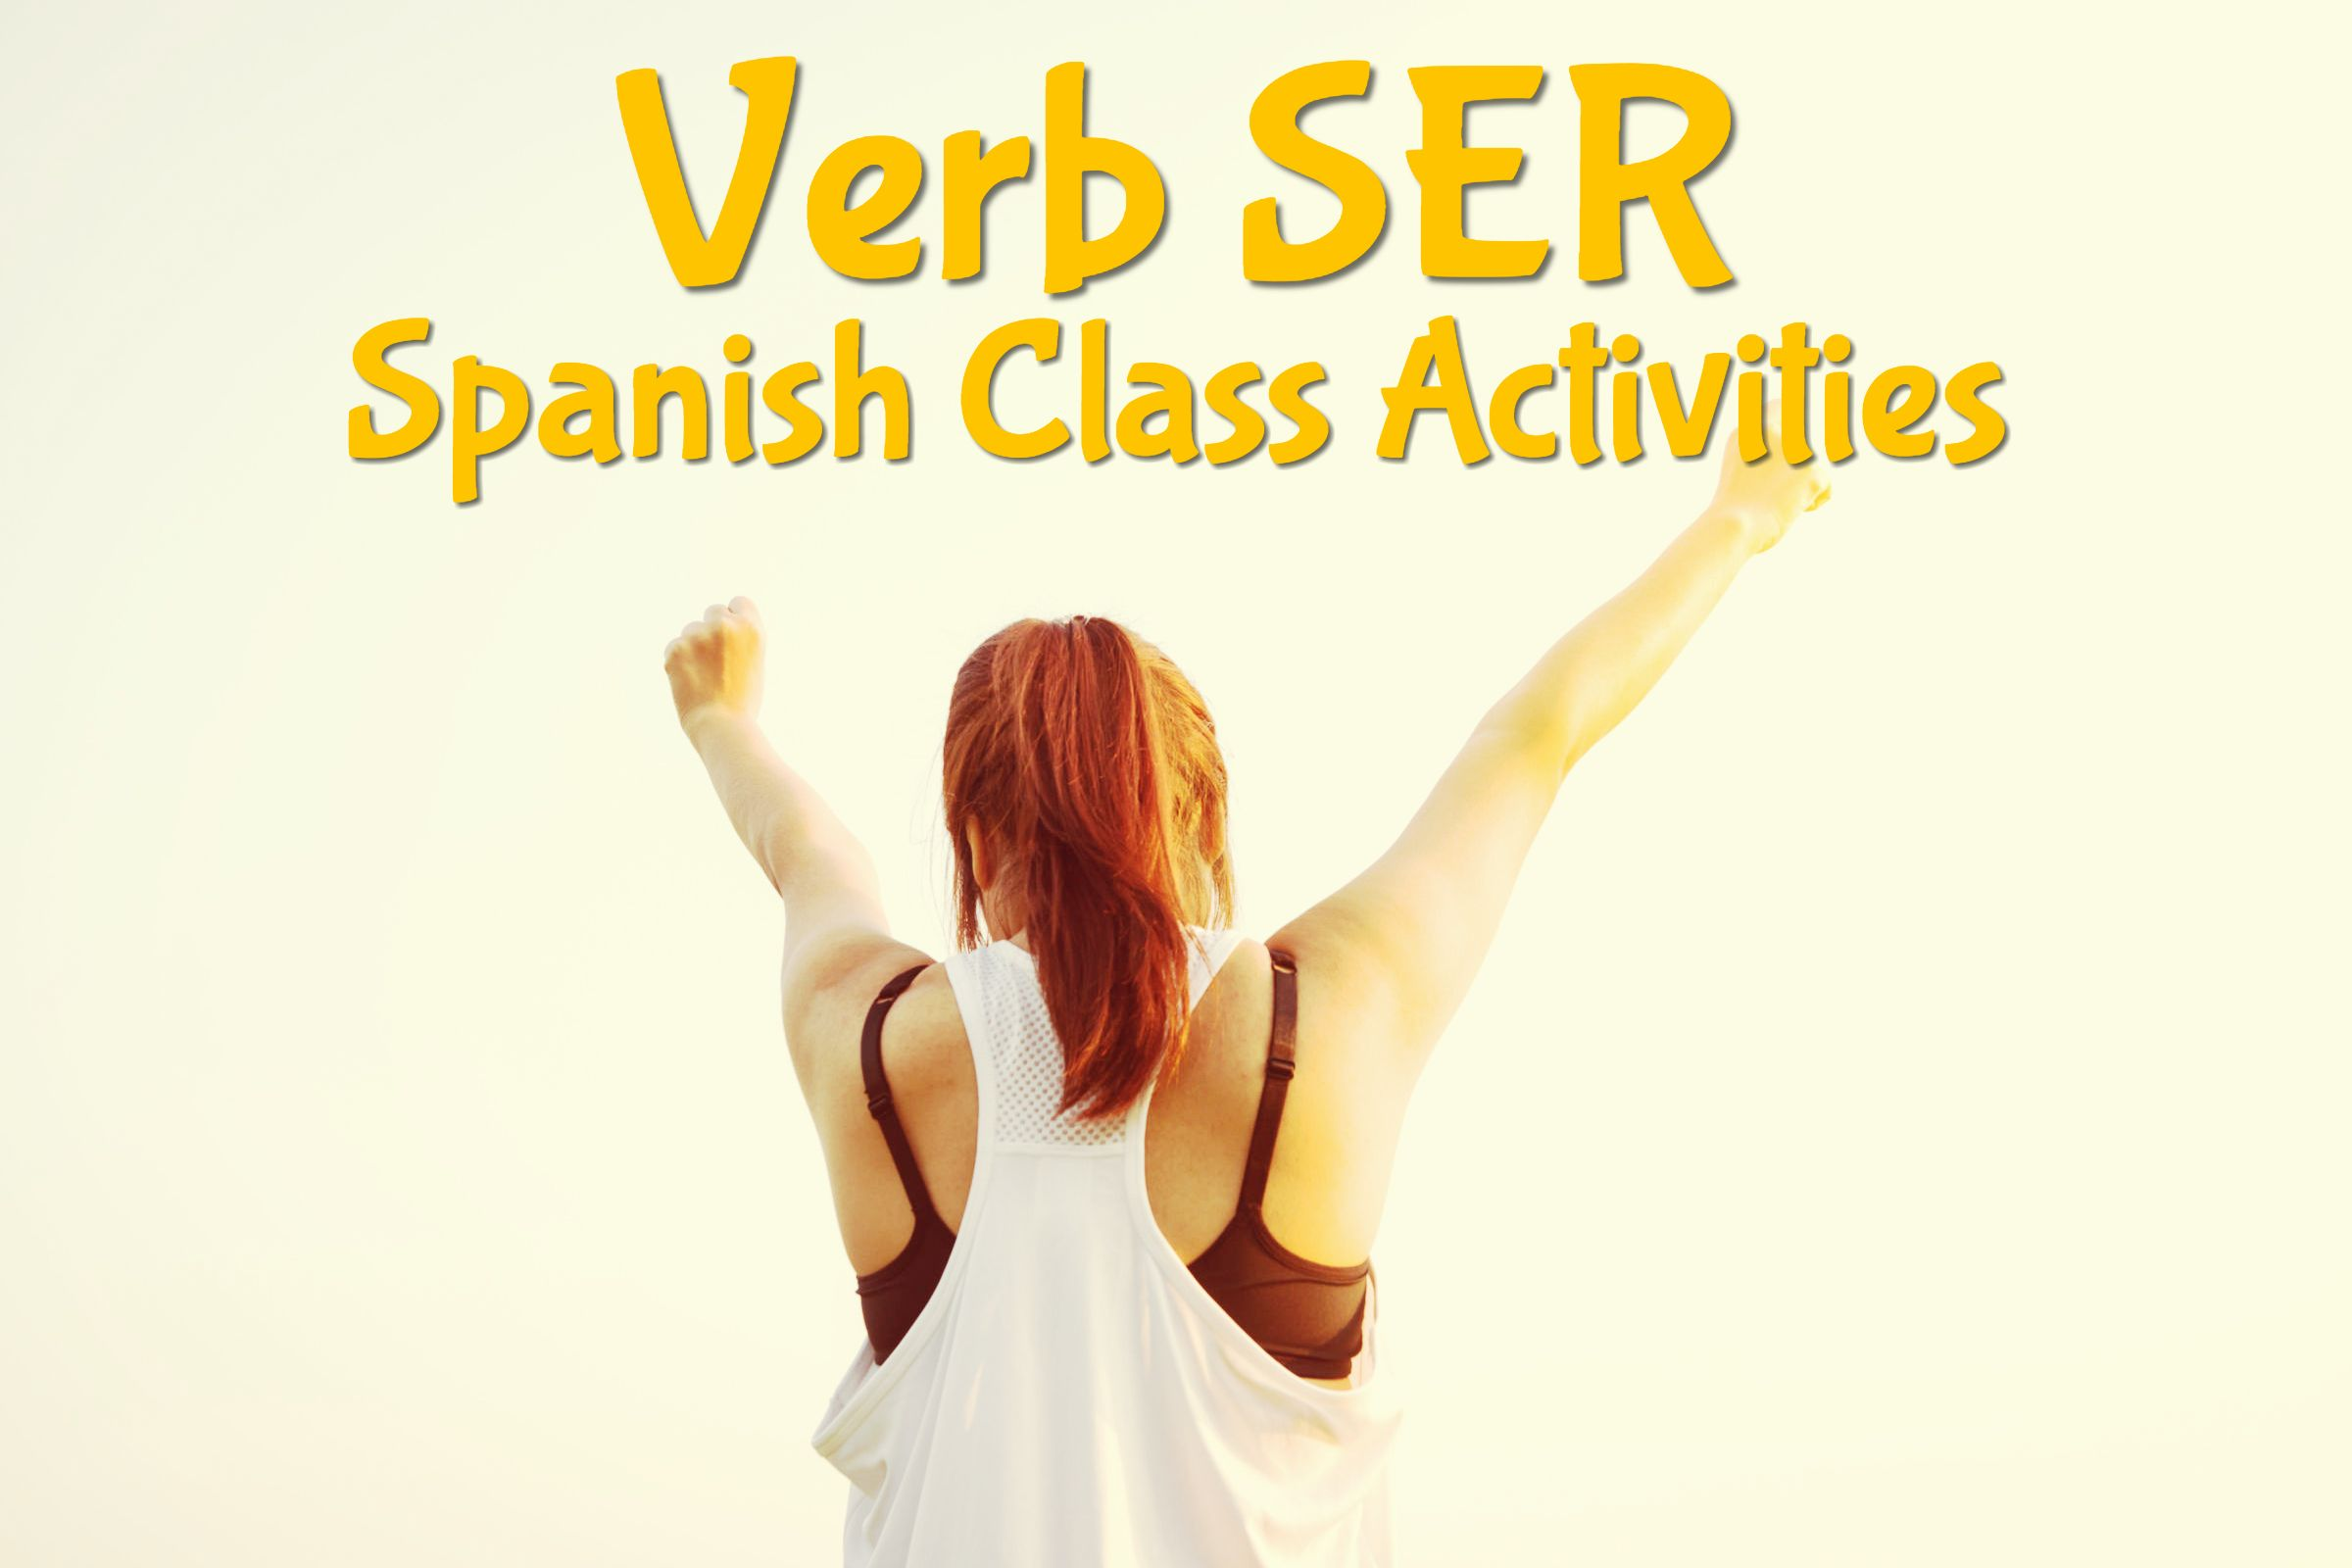 Verb Ser Spanish Class Activities